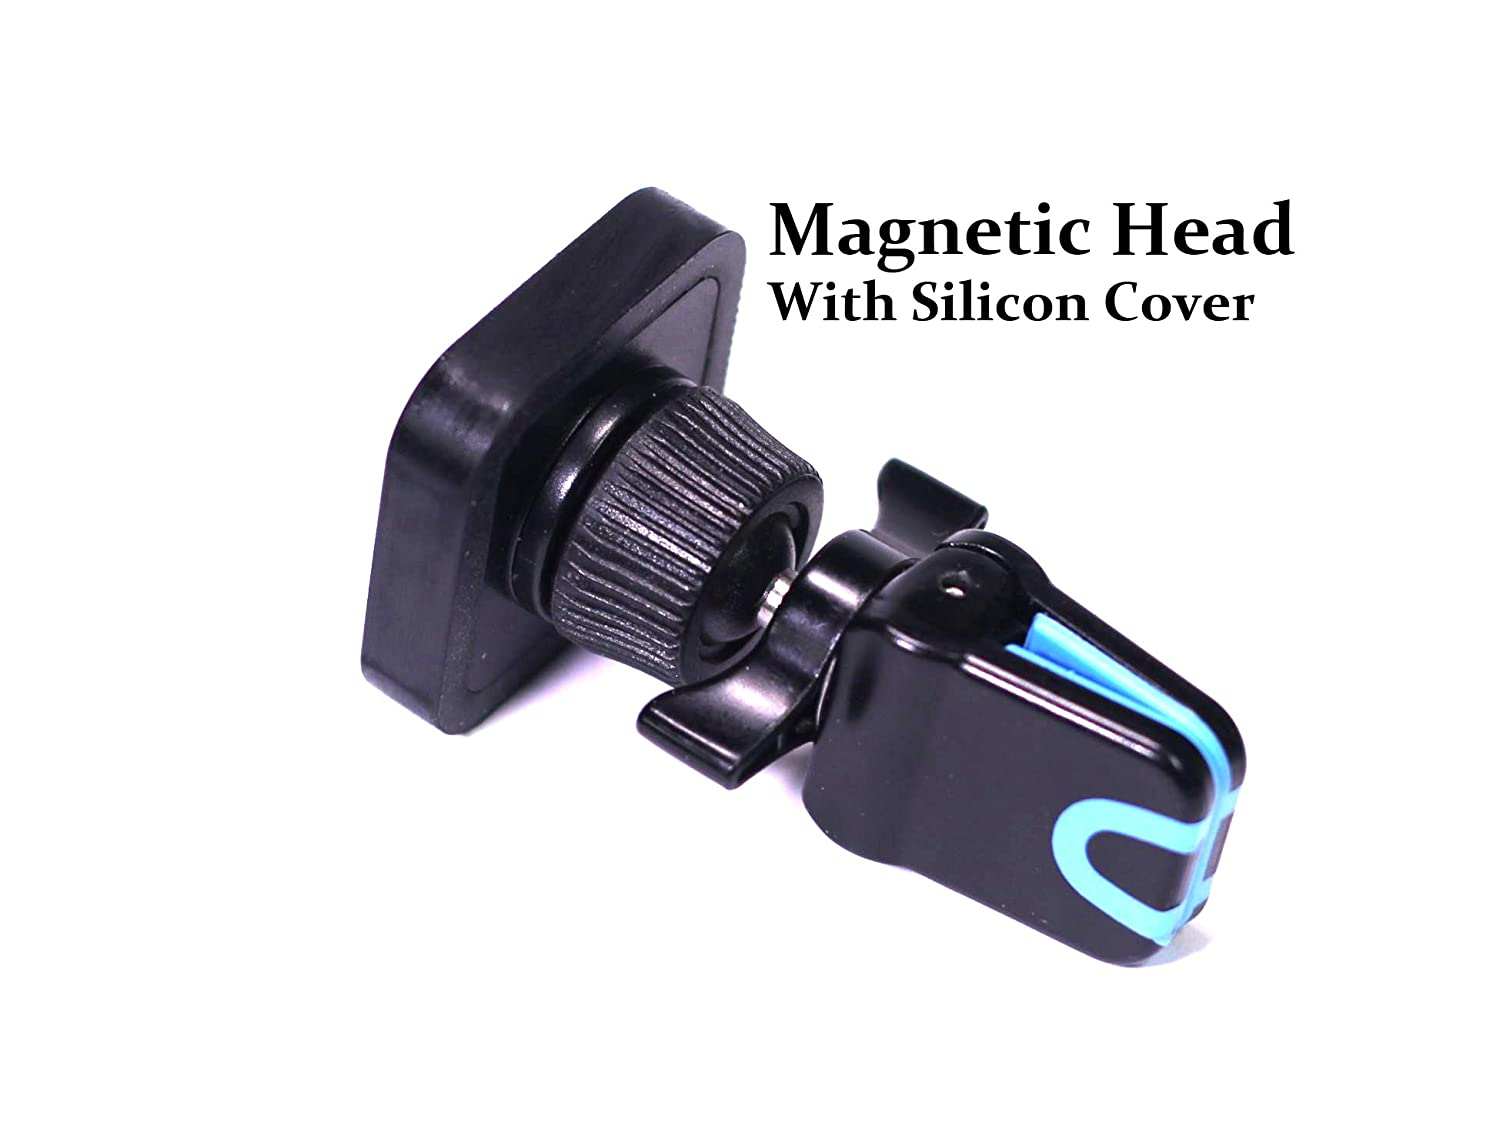 iMagbond High-End Aluminum Universal Air Vent Magnetic Car Mount Holder for iPhone and Other Mobile Devices with Hands-Free Technology and Magnetic Phone Mount AIBC International imagbond-ventkit